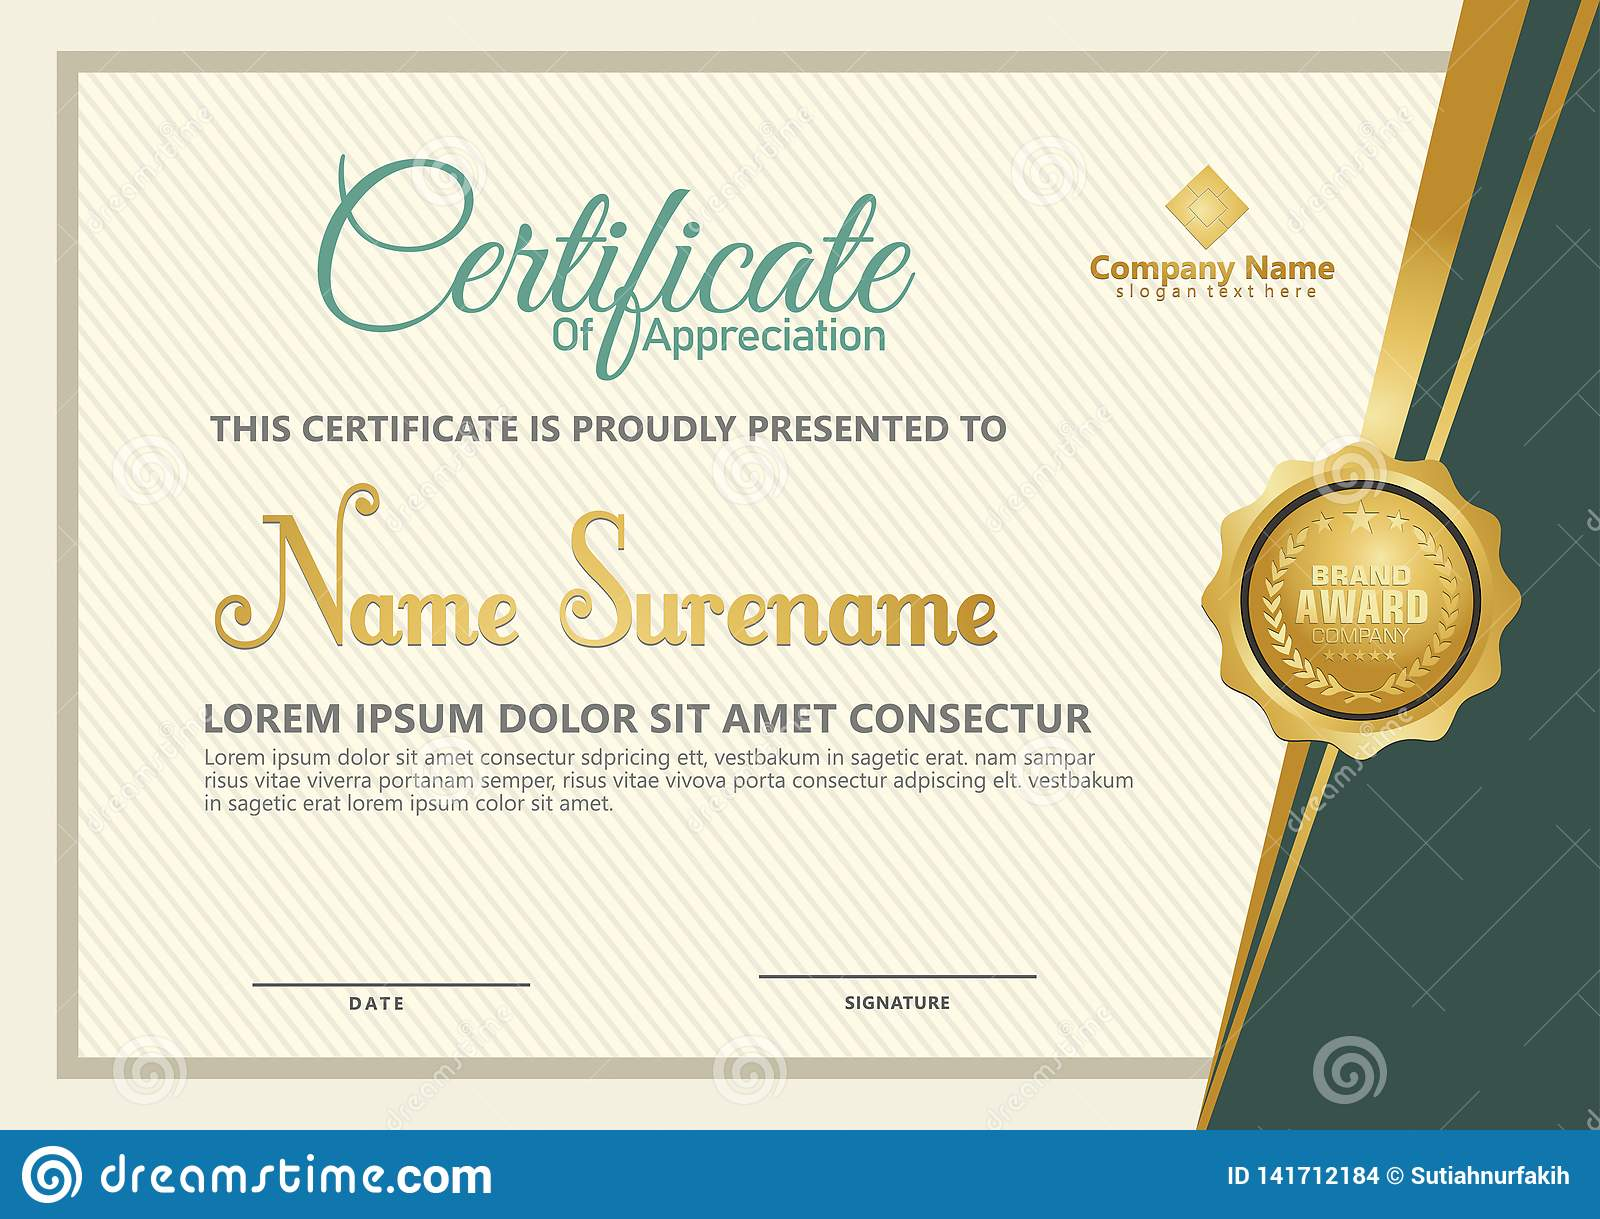 Elegant certificate template vector with luxury and modern pattern background